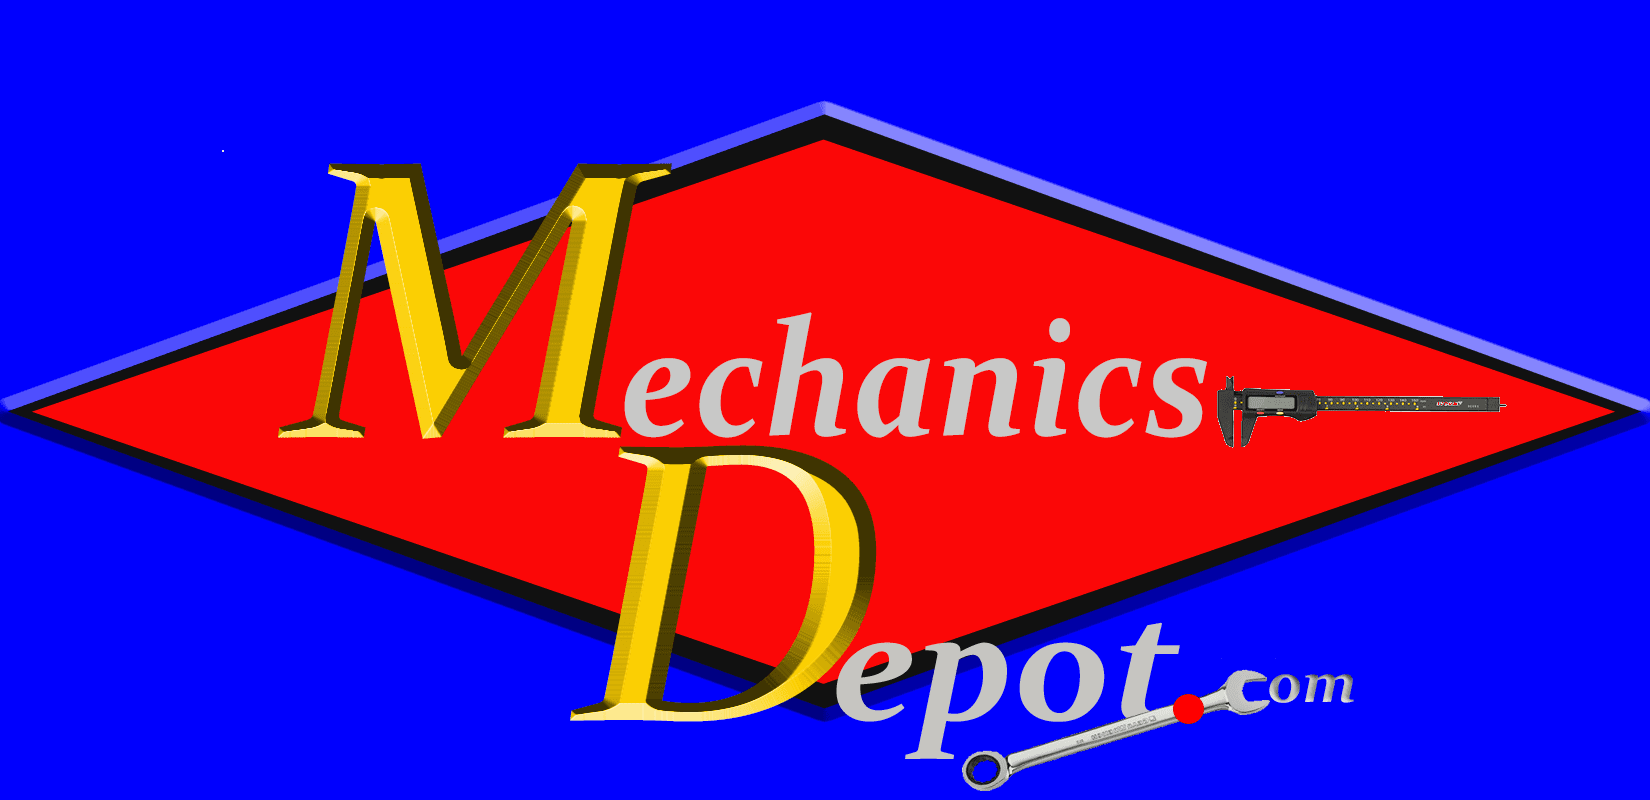 Mechanics-depot.com Mechanics-Depot.com is your one stop online shop for all of your mechanical tool and chemical needs.